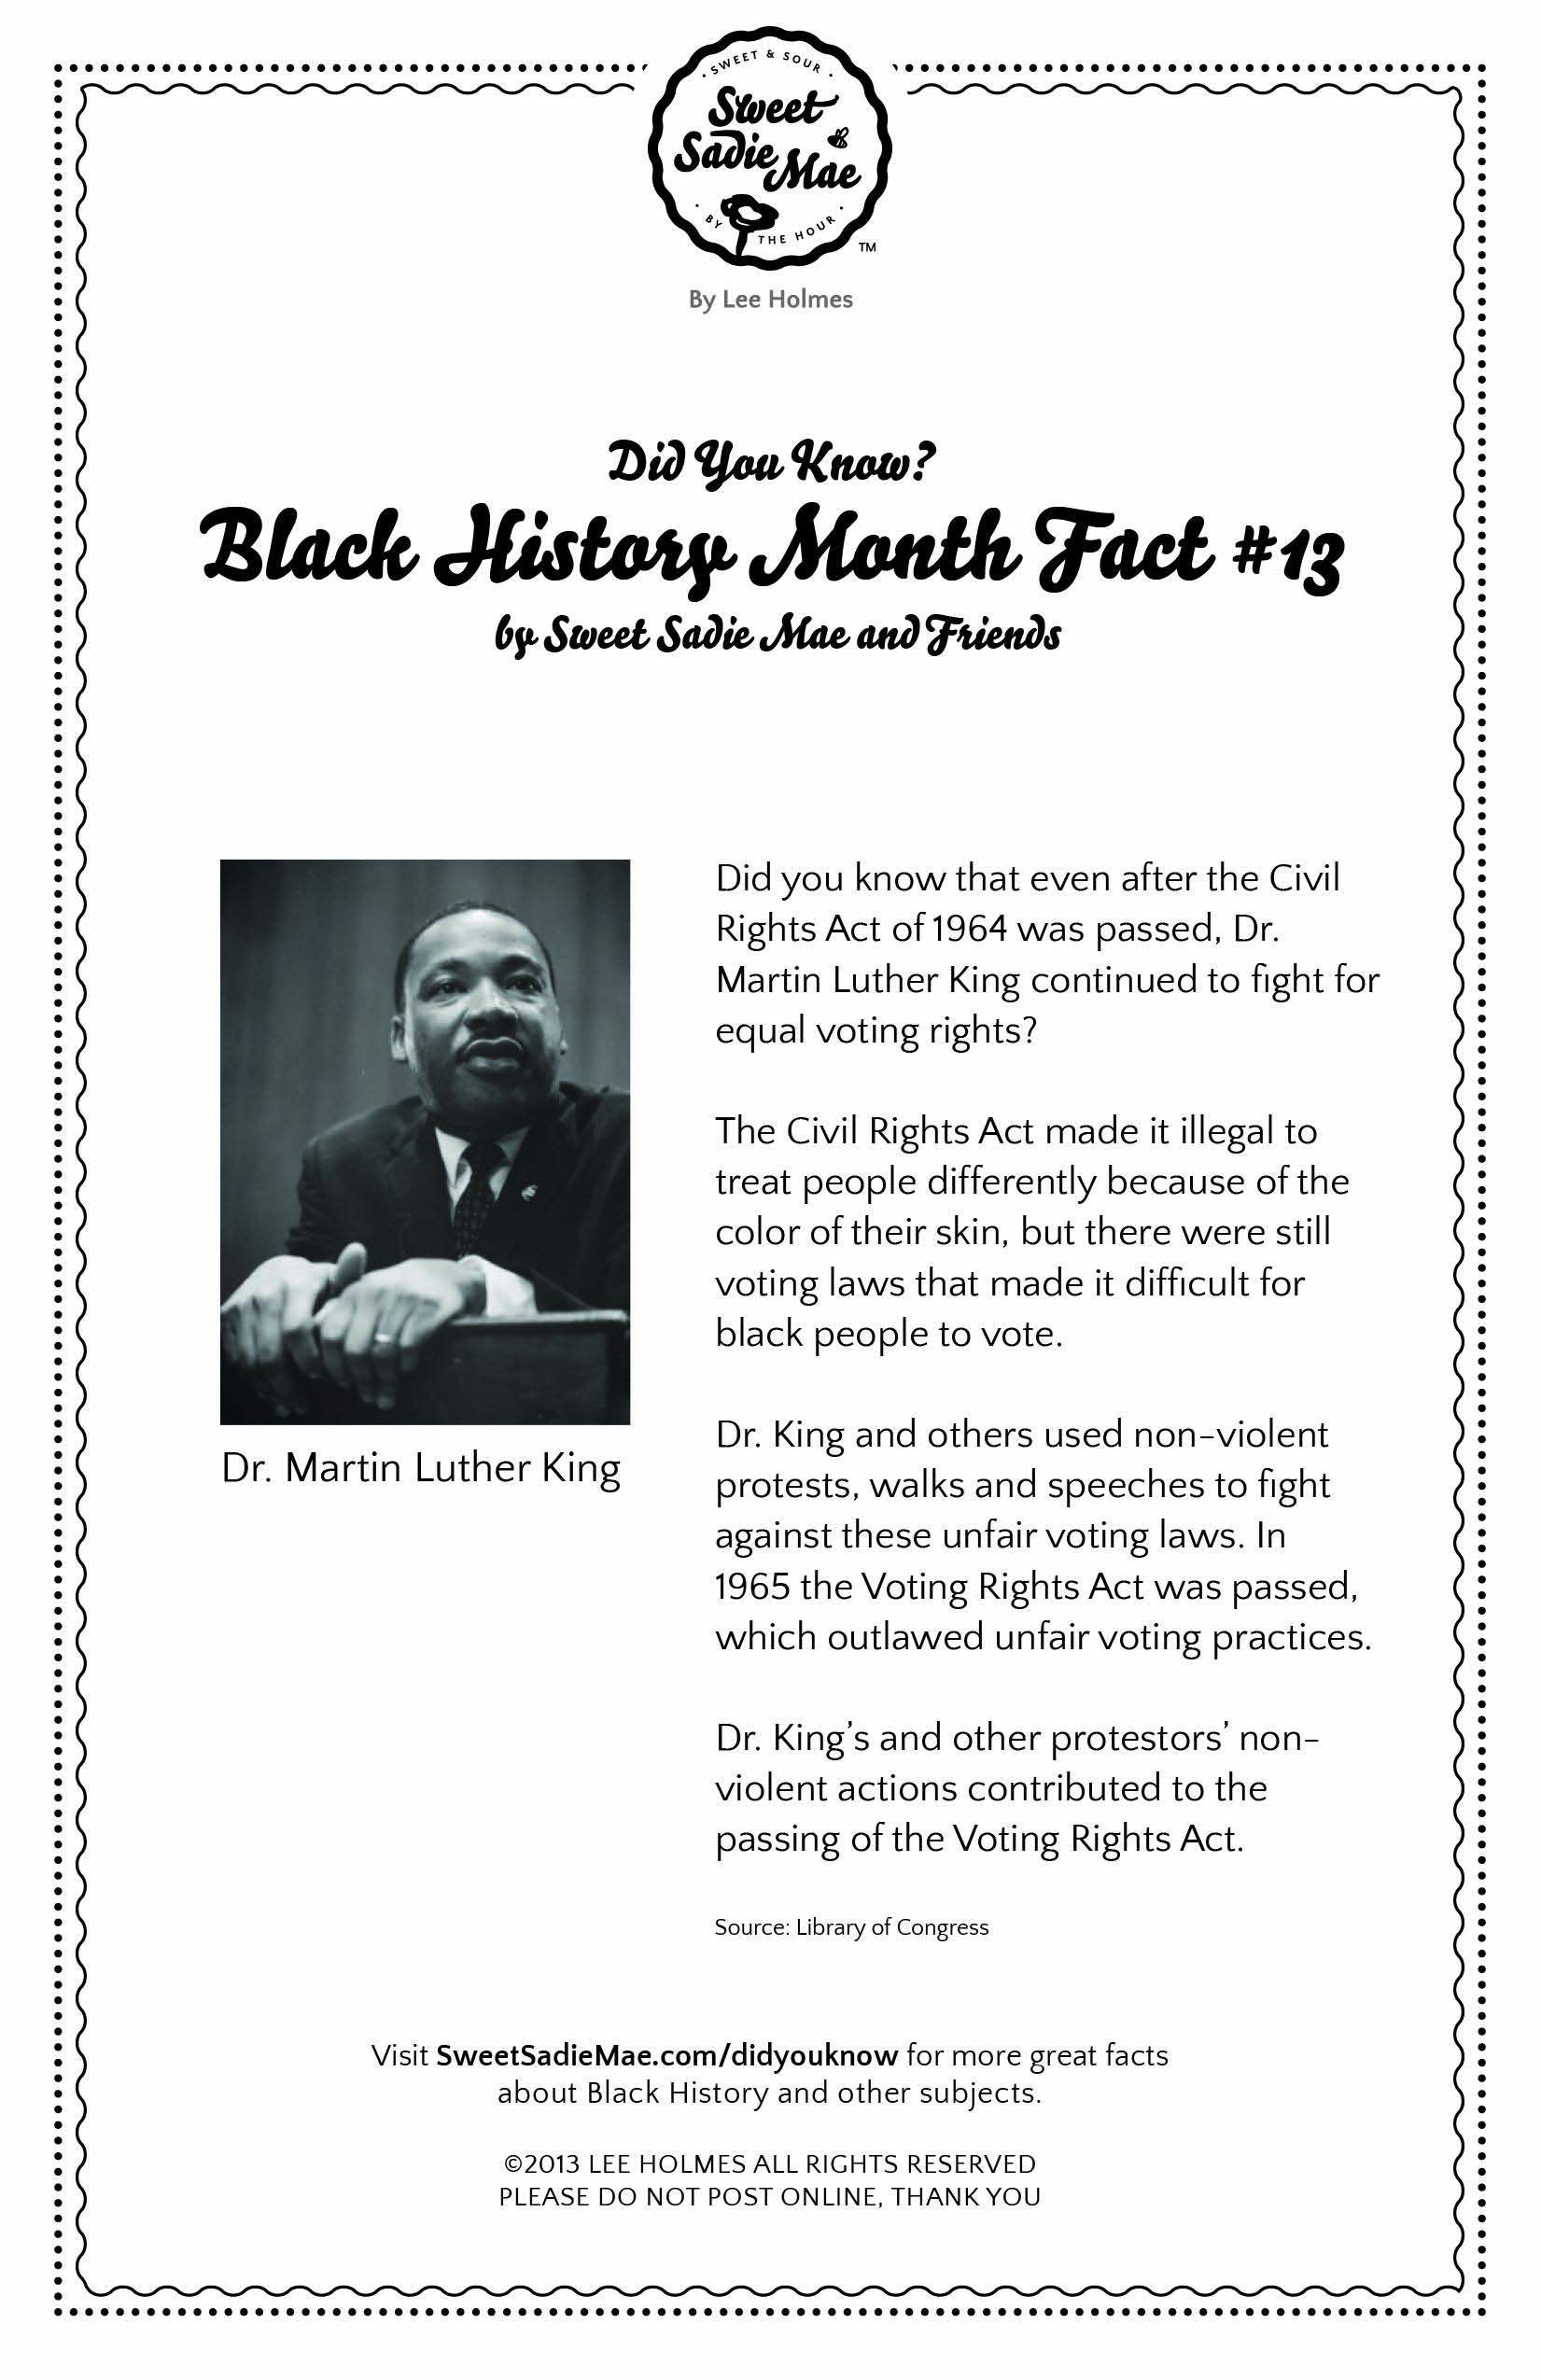 Civil Rights Act Amp Voting Rights Act Dr Martin Luther King Black History Month Fact 13